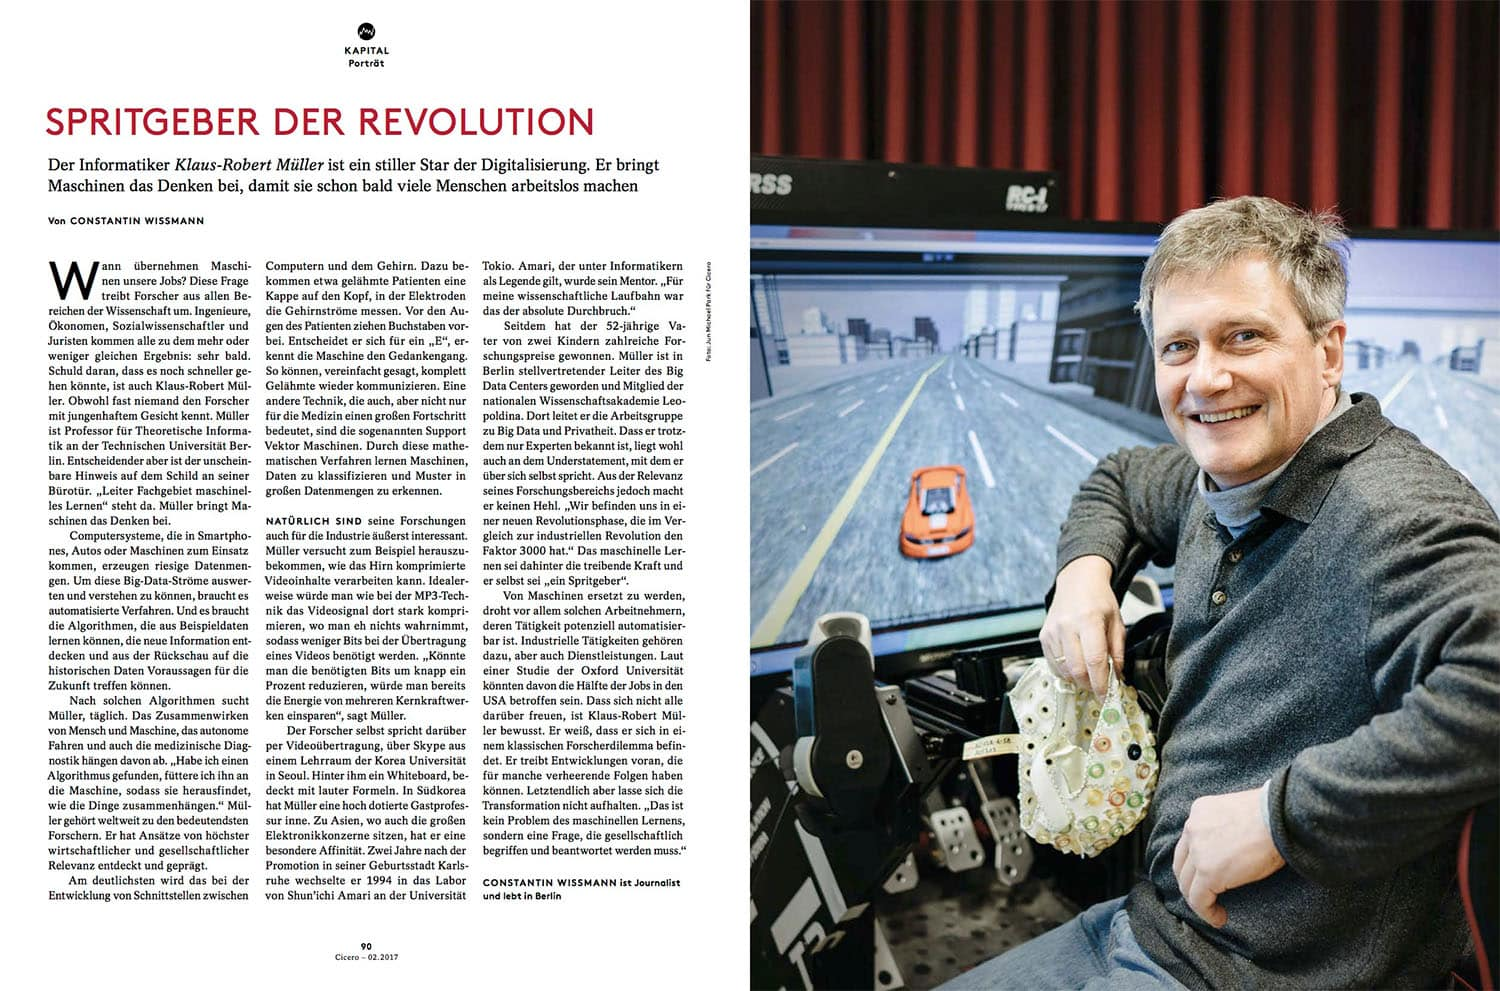 Portrait of Dr. Klaus-Robert Muller, researcher and expert on artificial intelligence and machine running. Feb. 2017, Cicero.